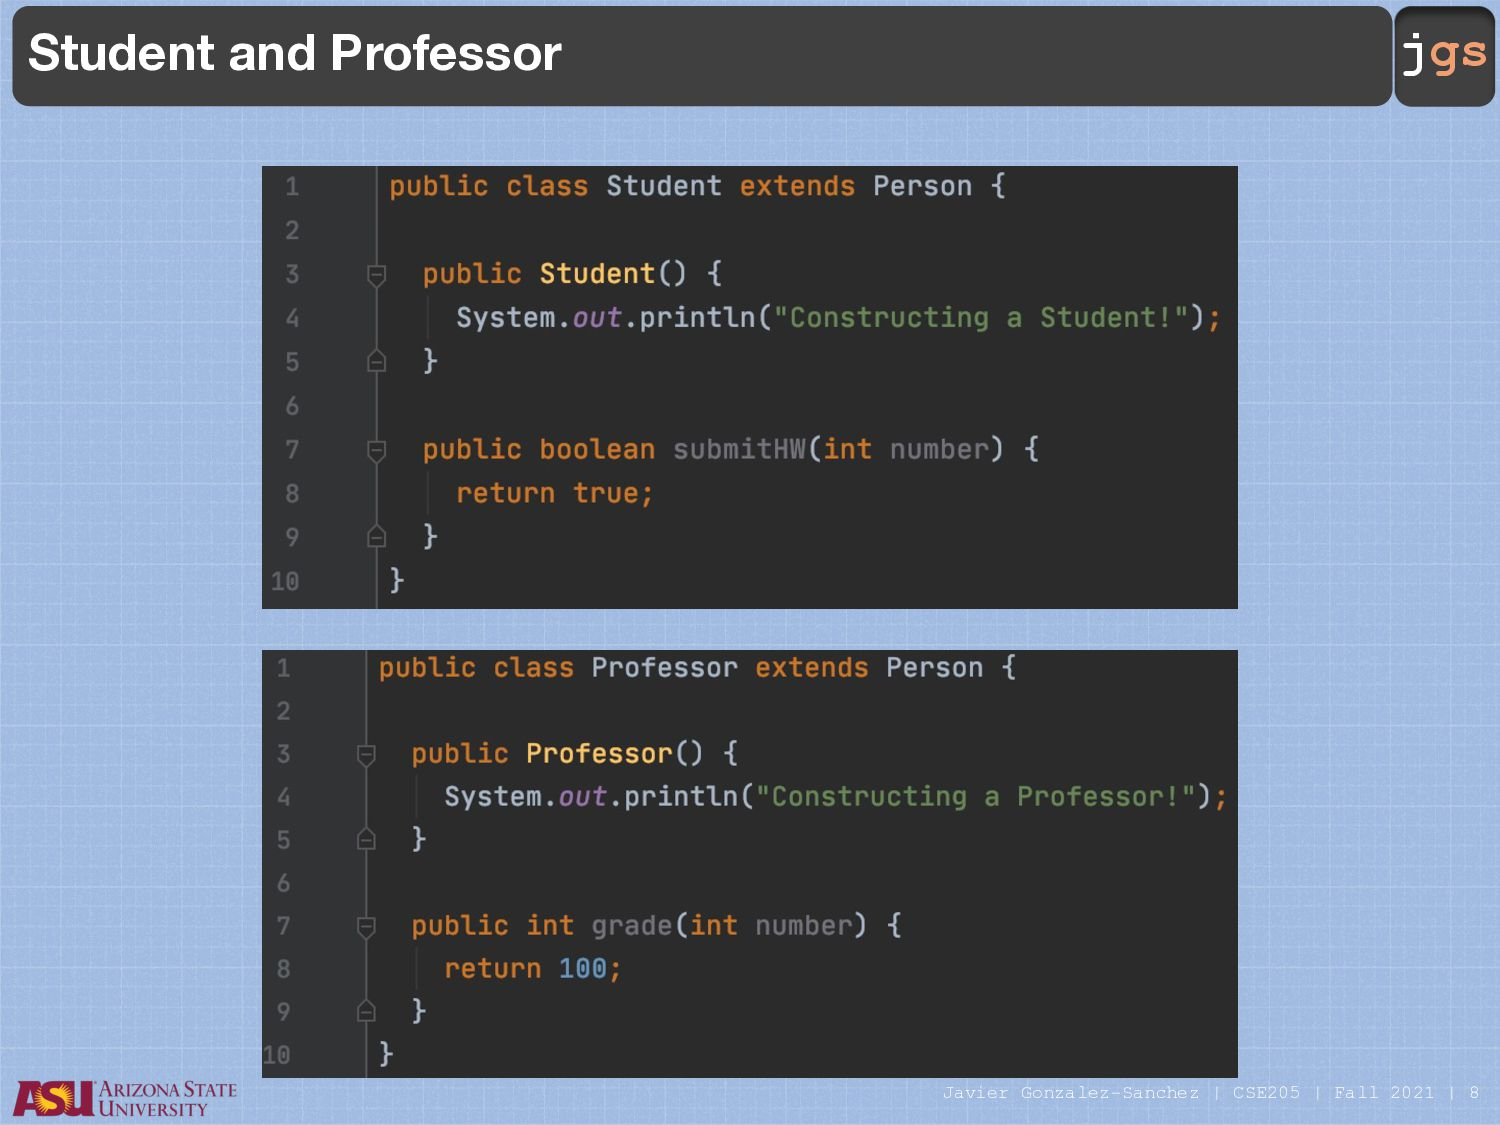 jgs Notes Java Programming for Assignment 01 (